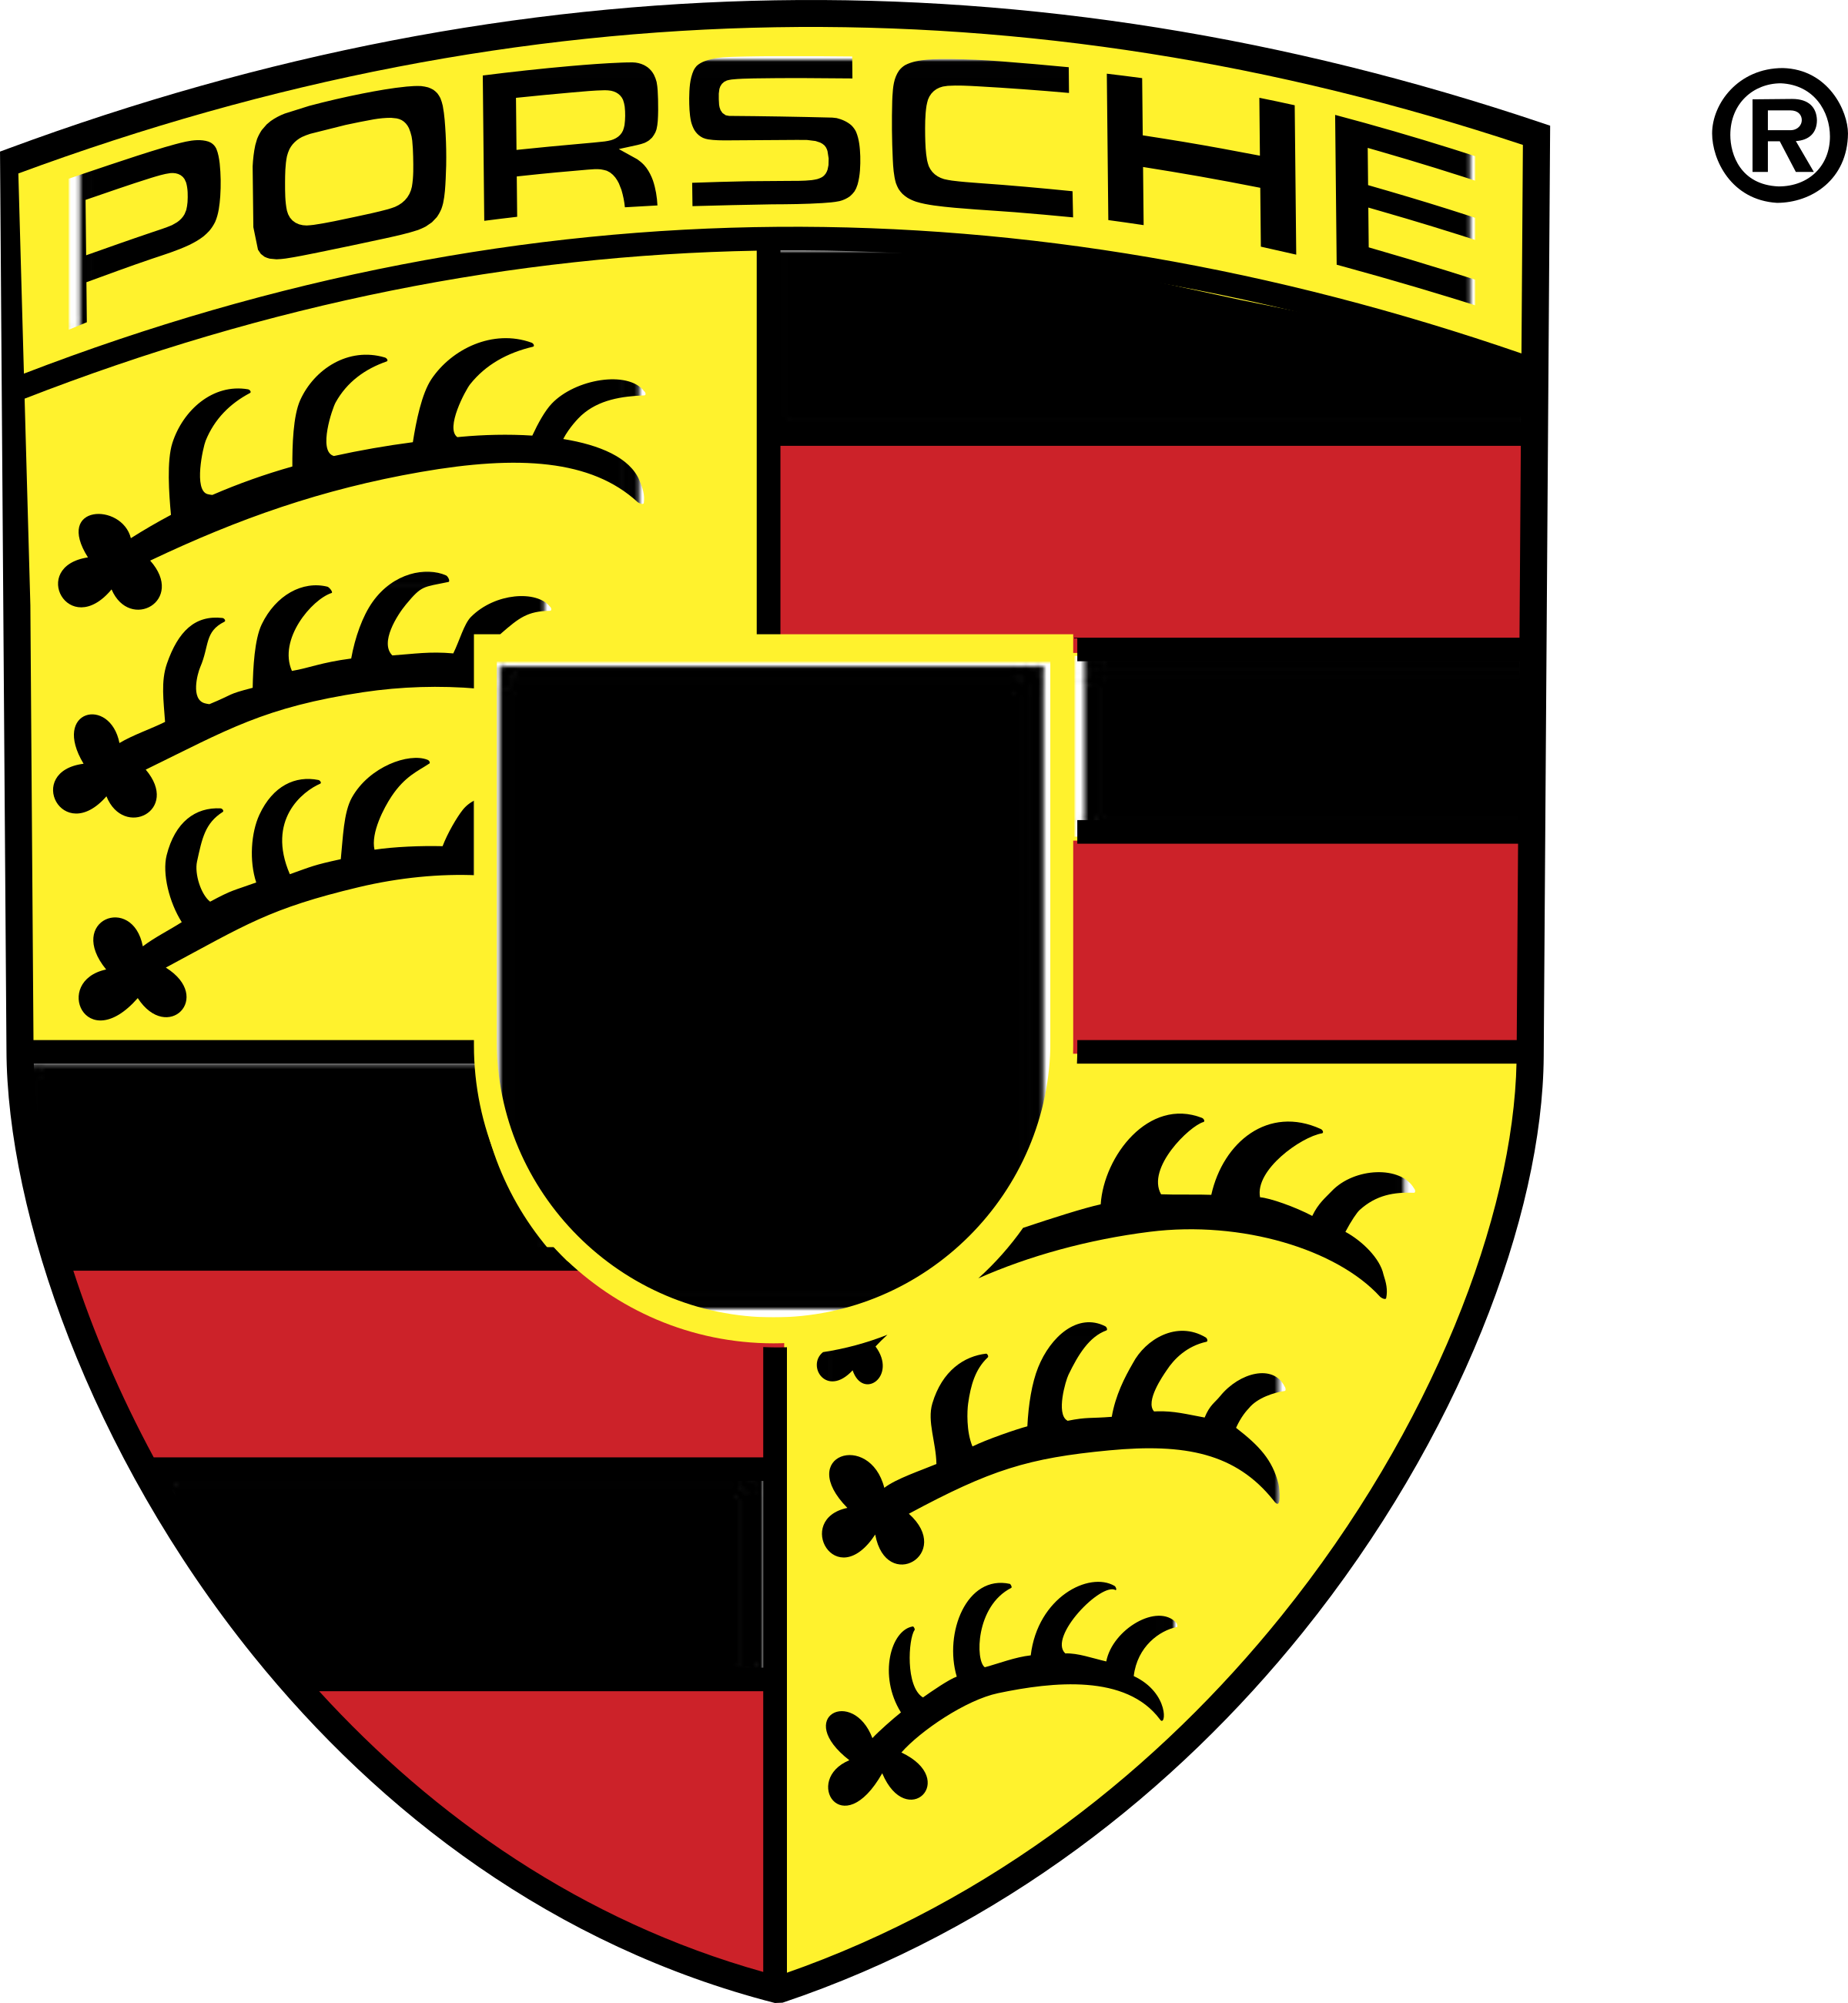 Porsche vector clipart. Logo png transparent svg